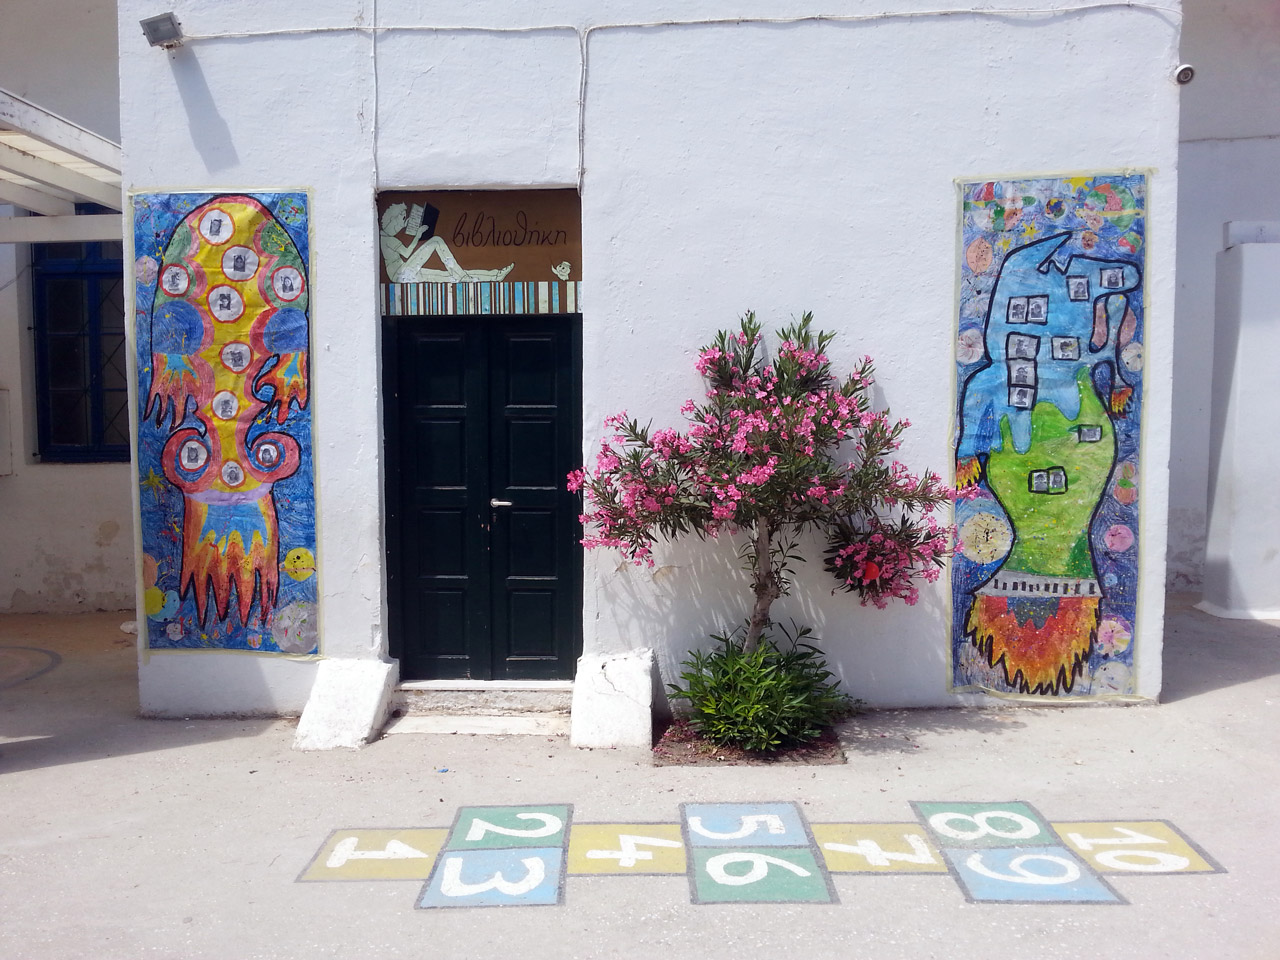 Paros Art School - Dimitra Chanioti